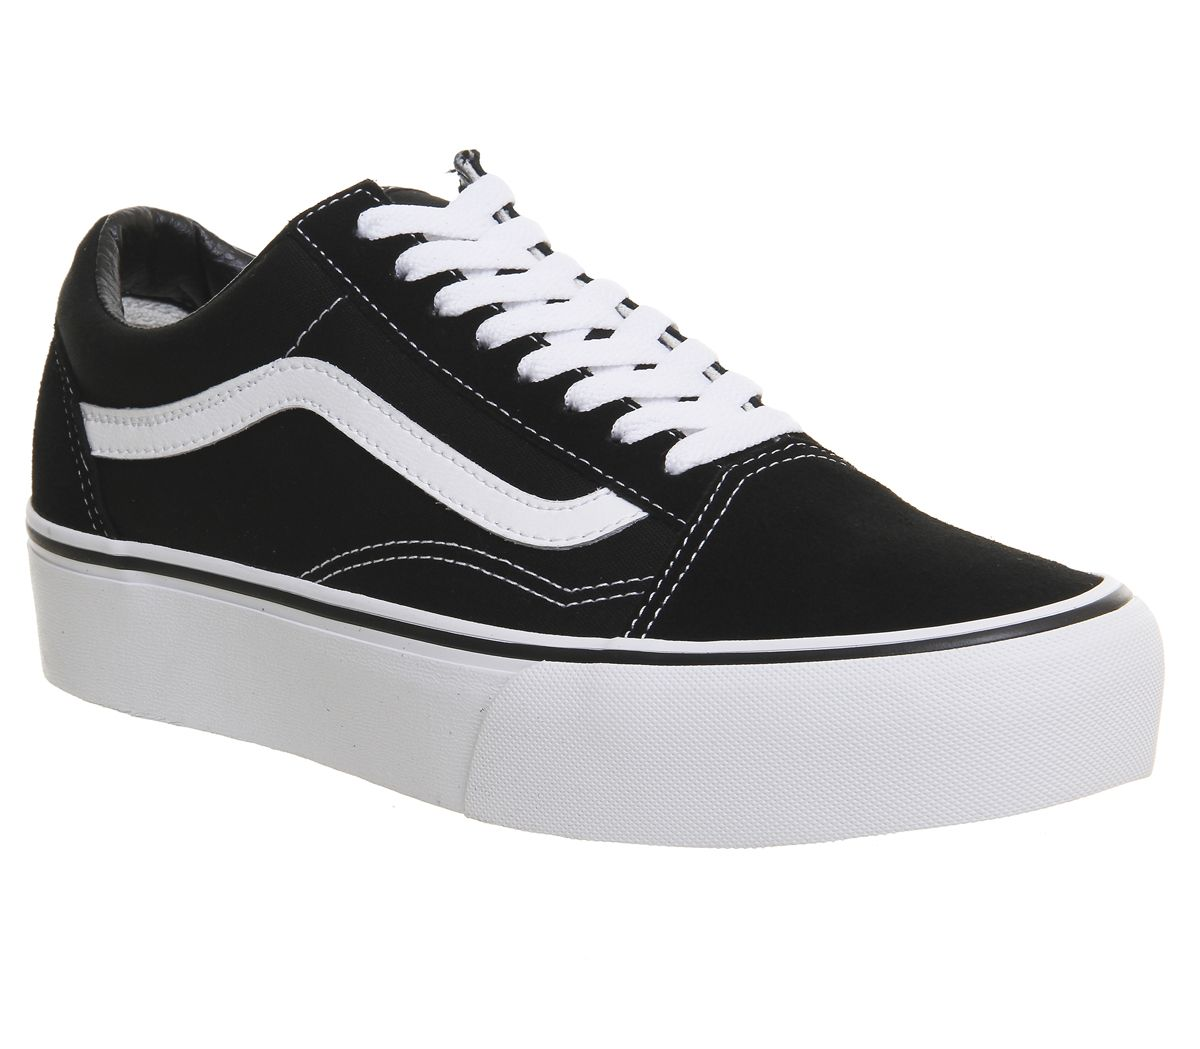 608917d09a2 Vans Old Skool Platform Black White - Hers trainers